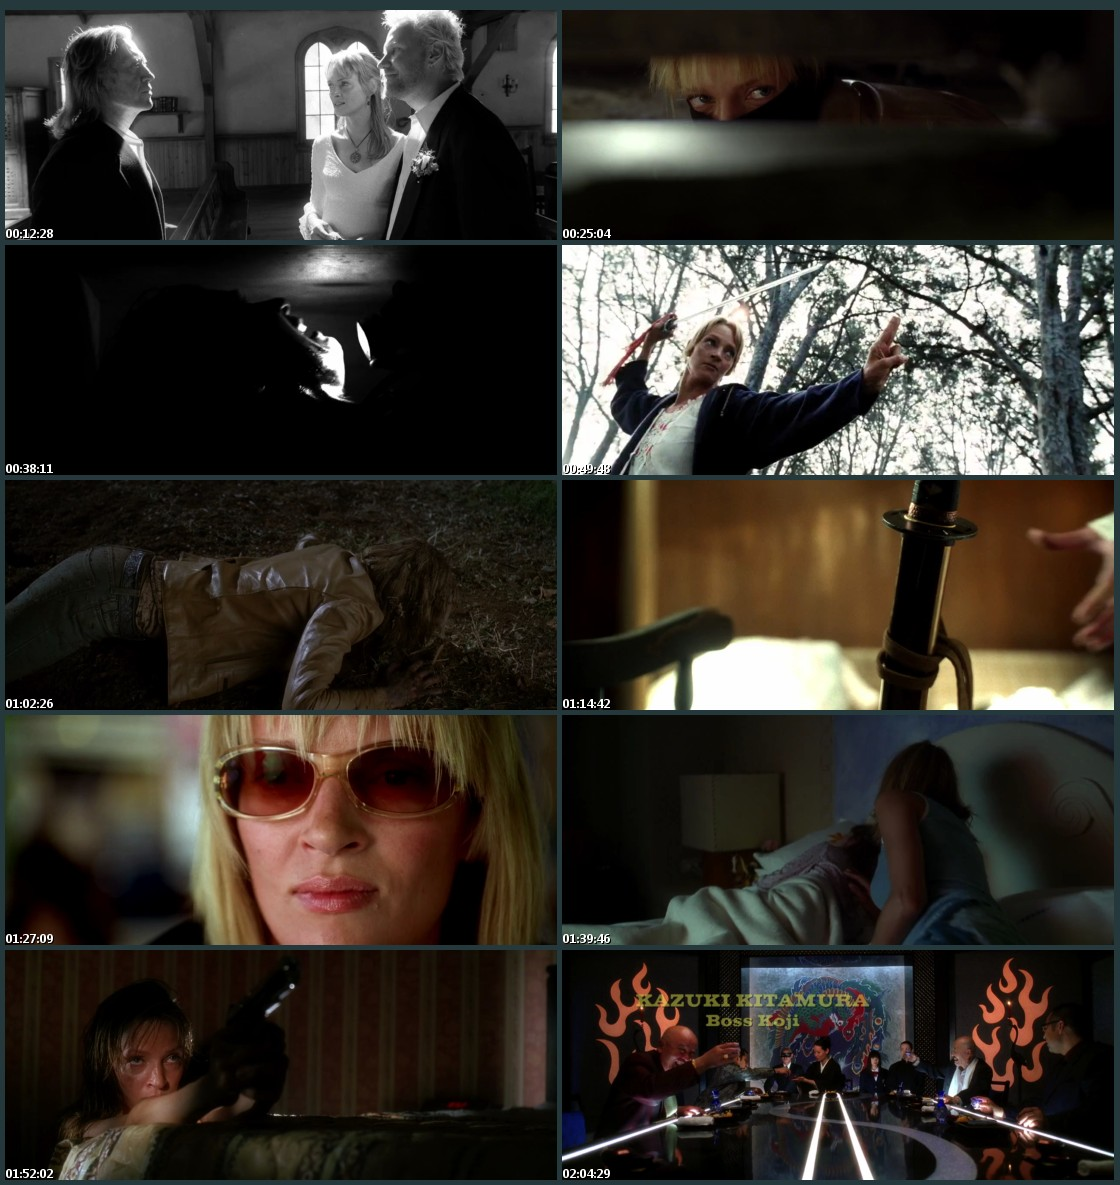 Kill+Bill+Vol.+2+2004+BluRay+720p+BRRip+1GB+hnmovies s